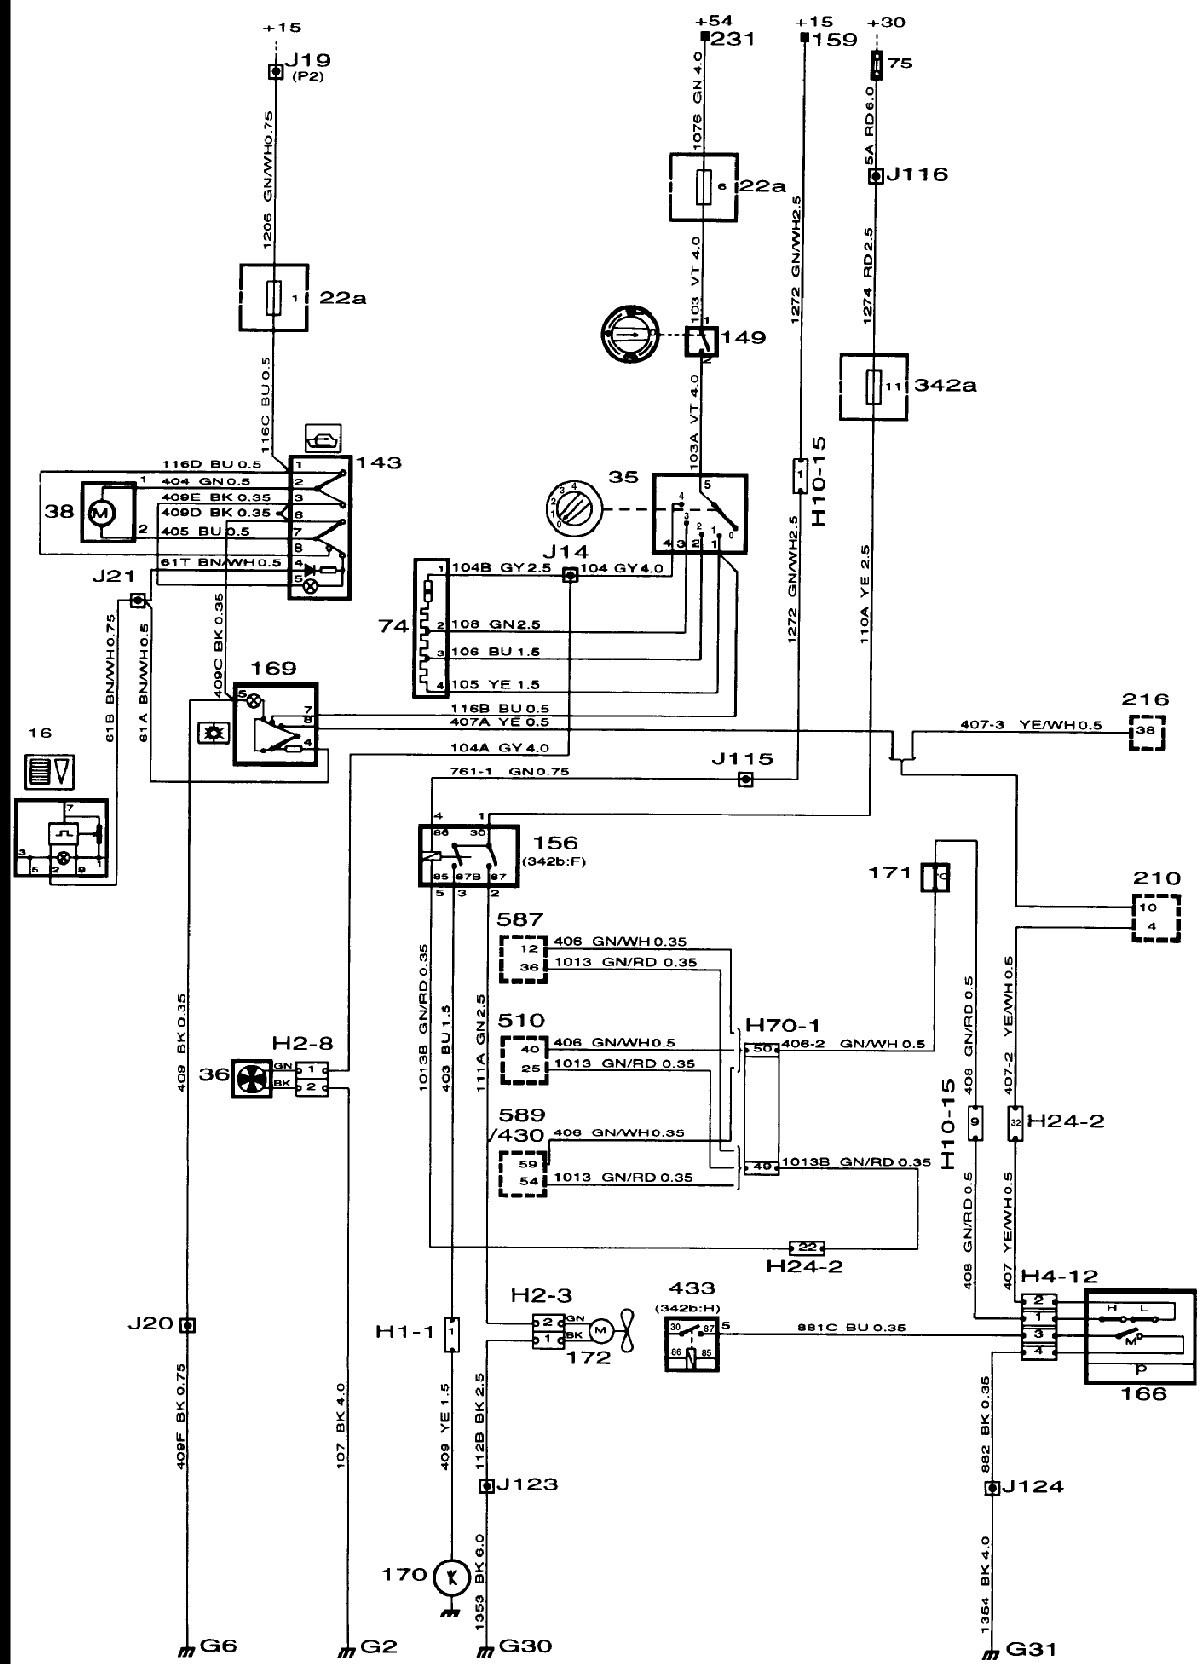 1996 Saab 9000 Obd Wiring Diagrams